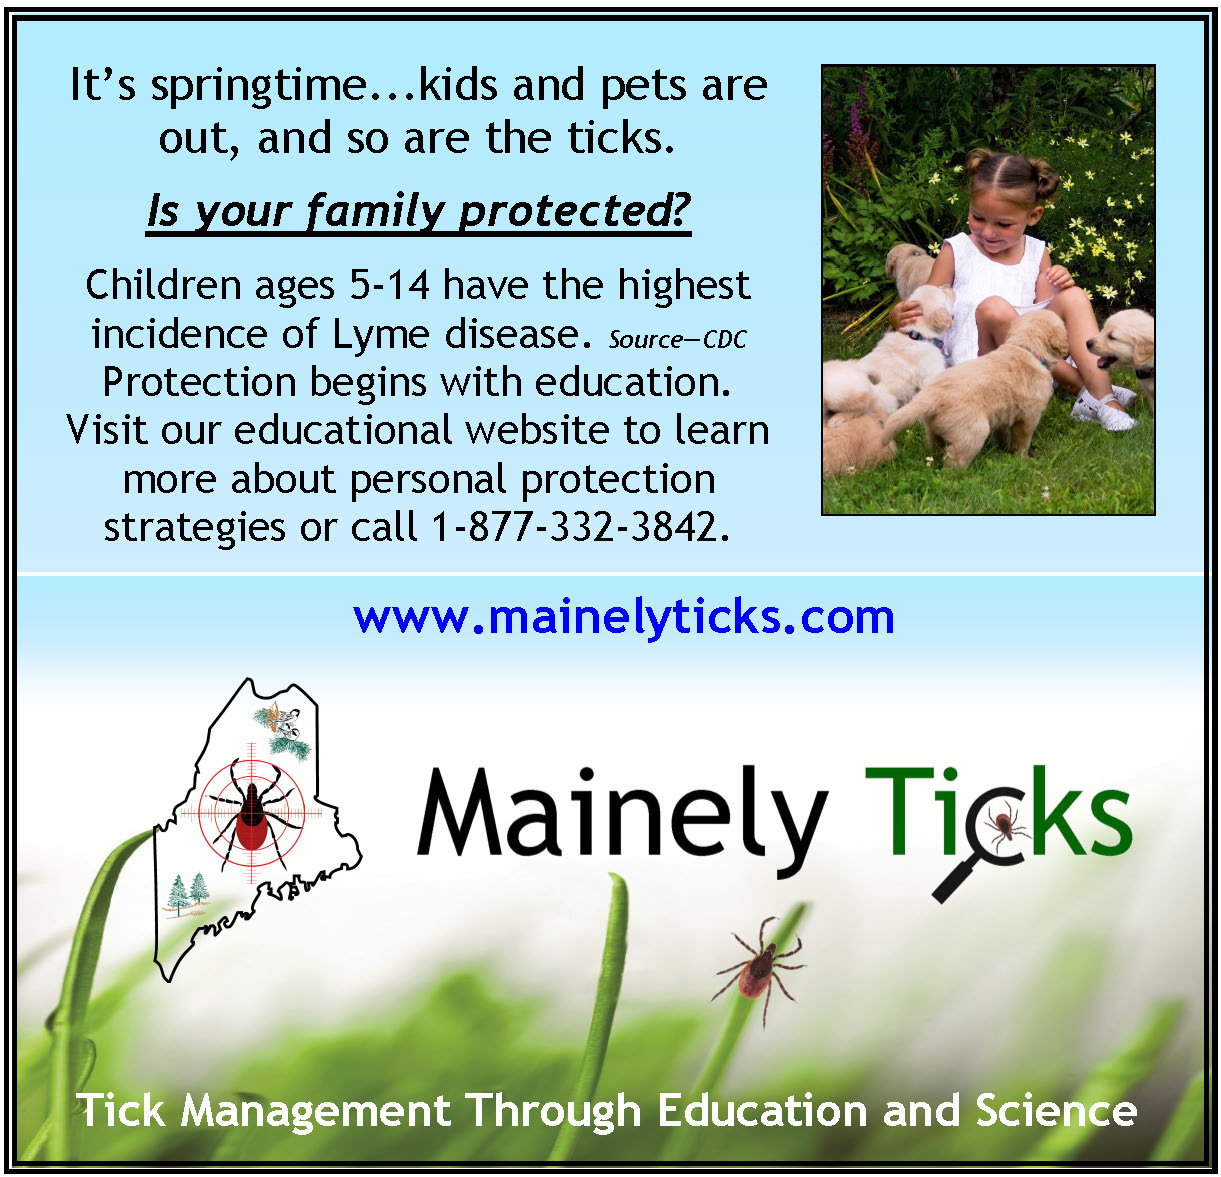 http://mainelyticks.com/